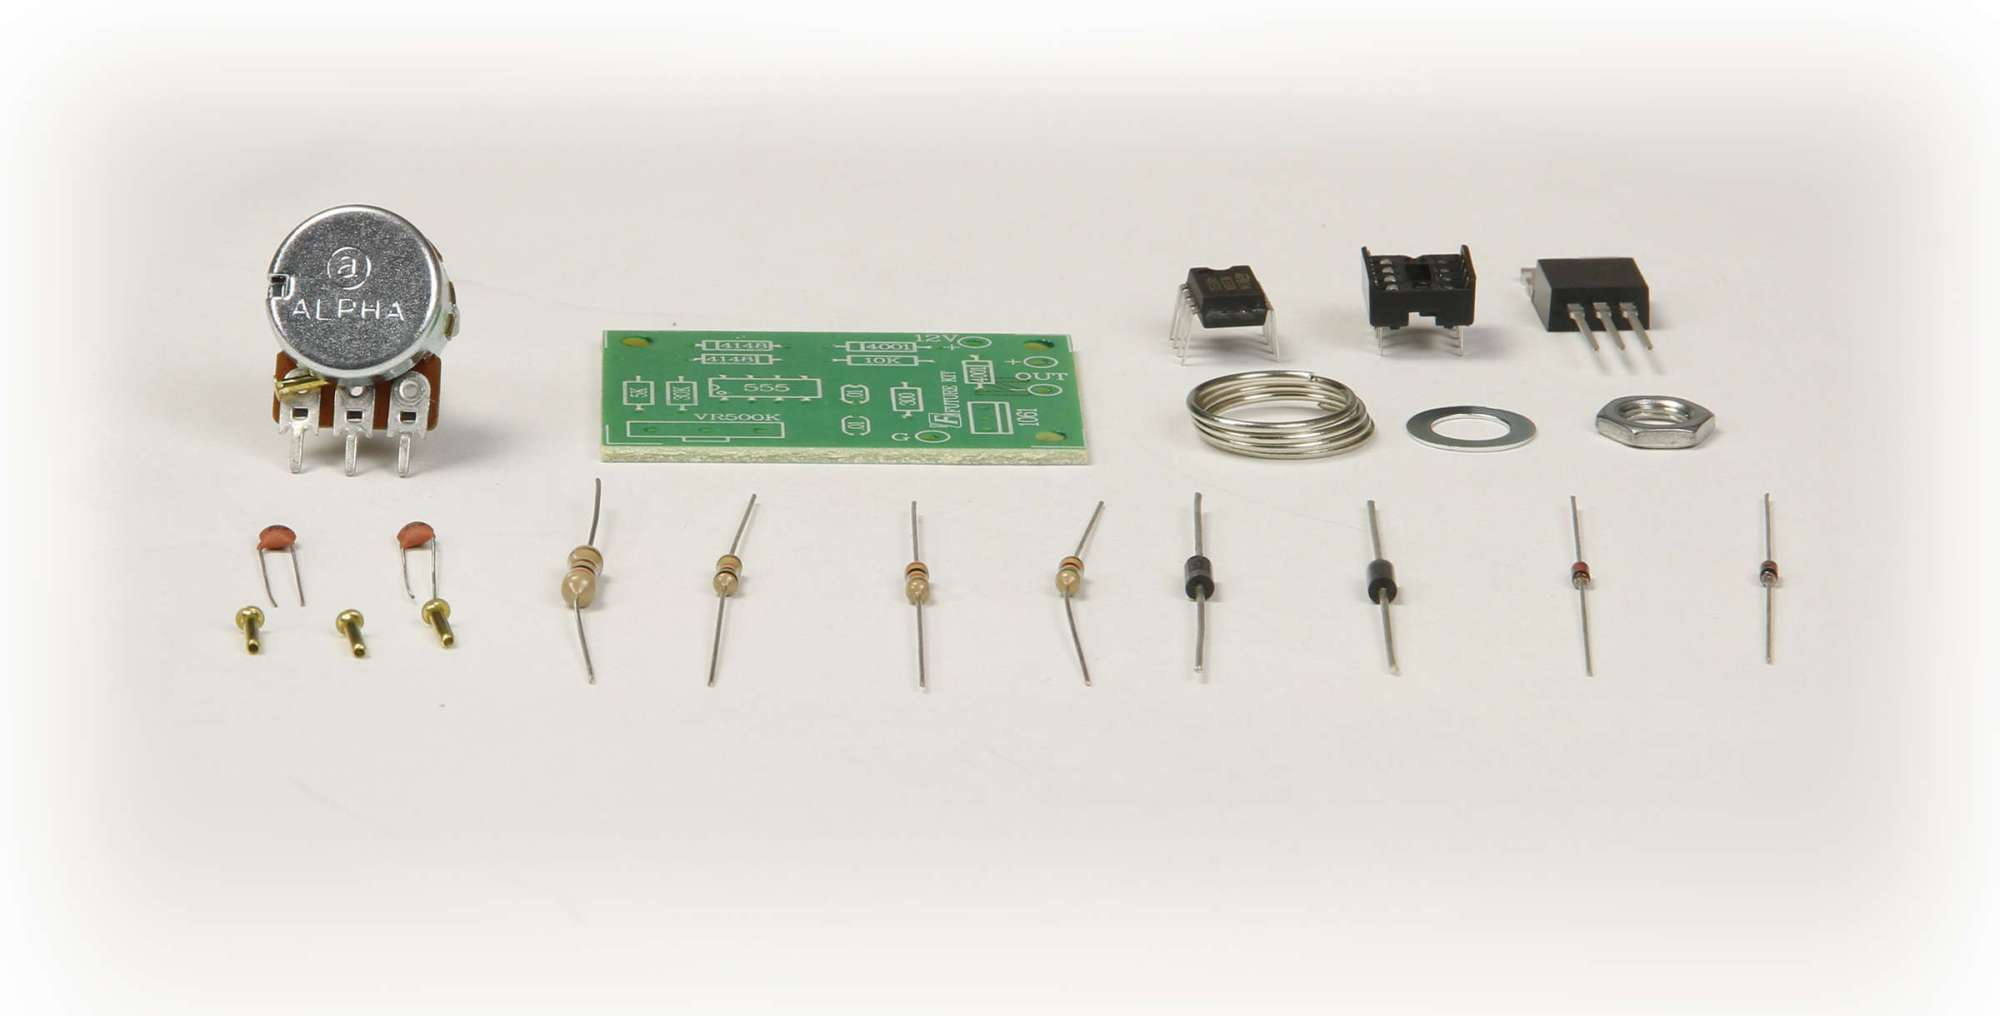 hight resolution of global specialties gsk 804 pwm dc motor speed control kit photo